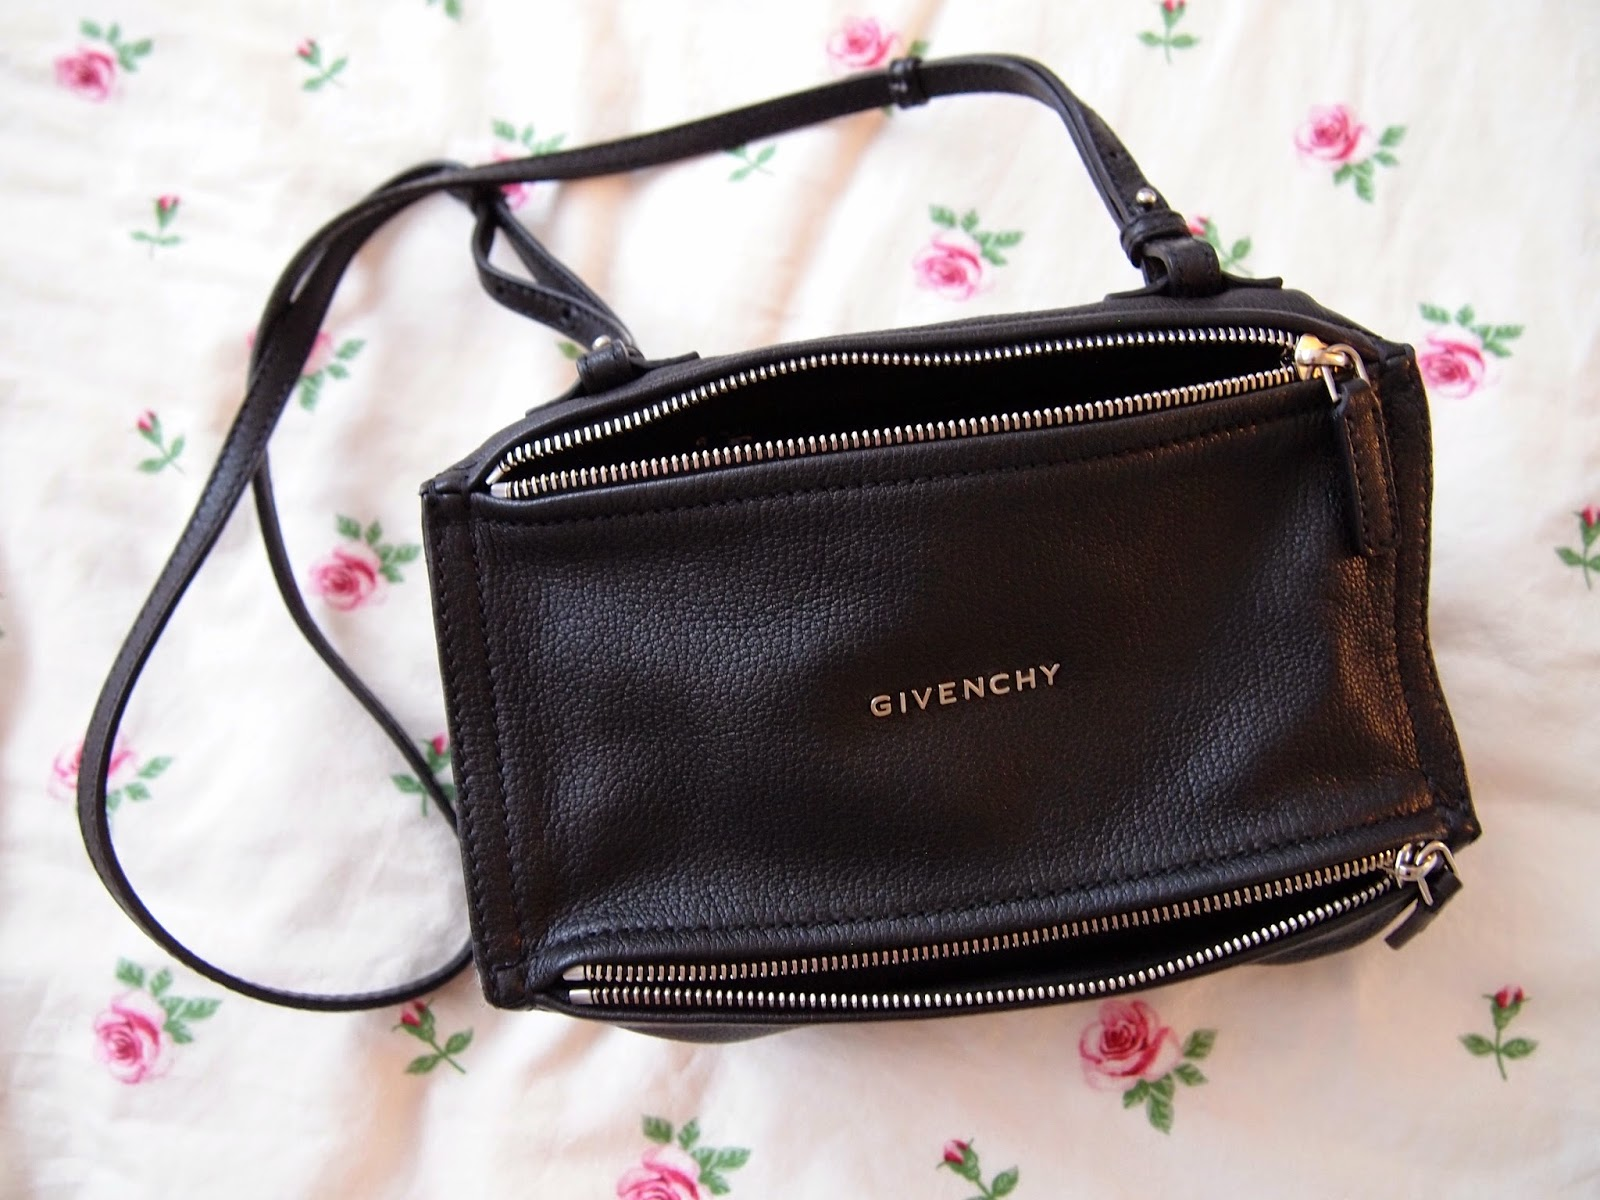 Givenchy Mini Pandora Messenger Bag in Black + Farfetch Review ... 98efc0fe6ddae